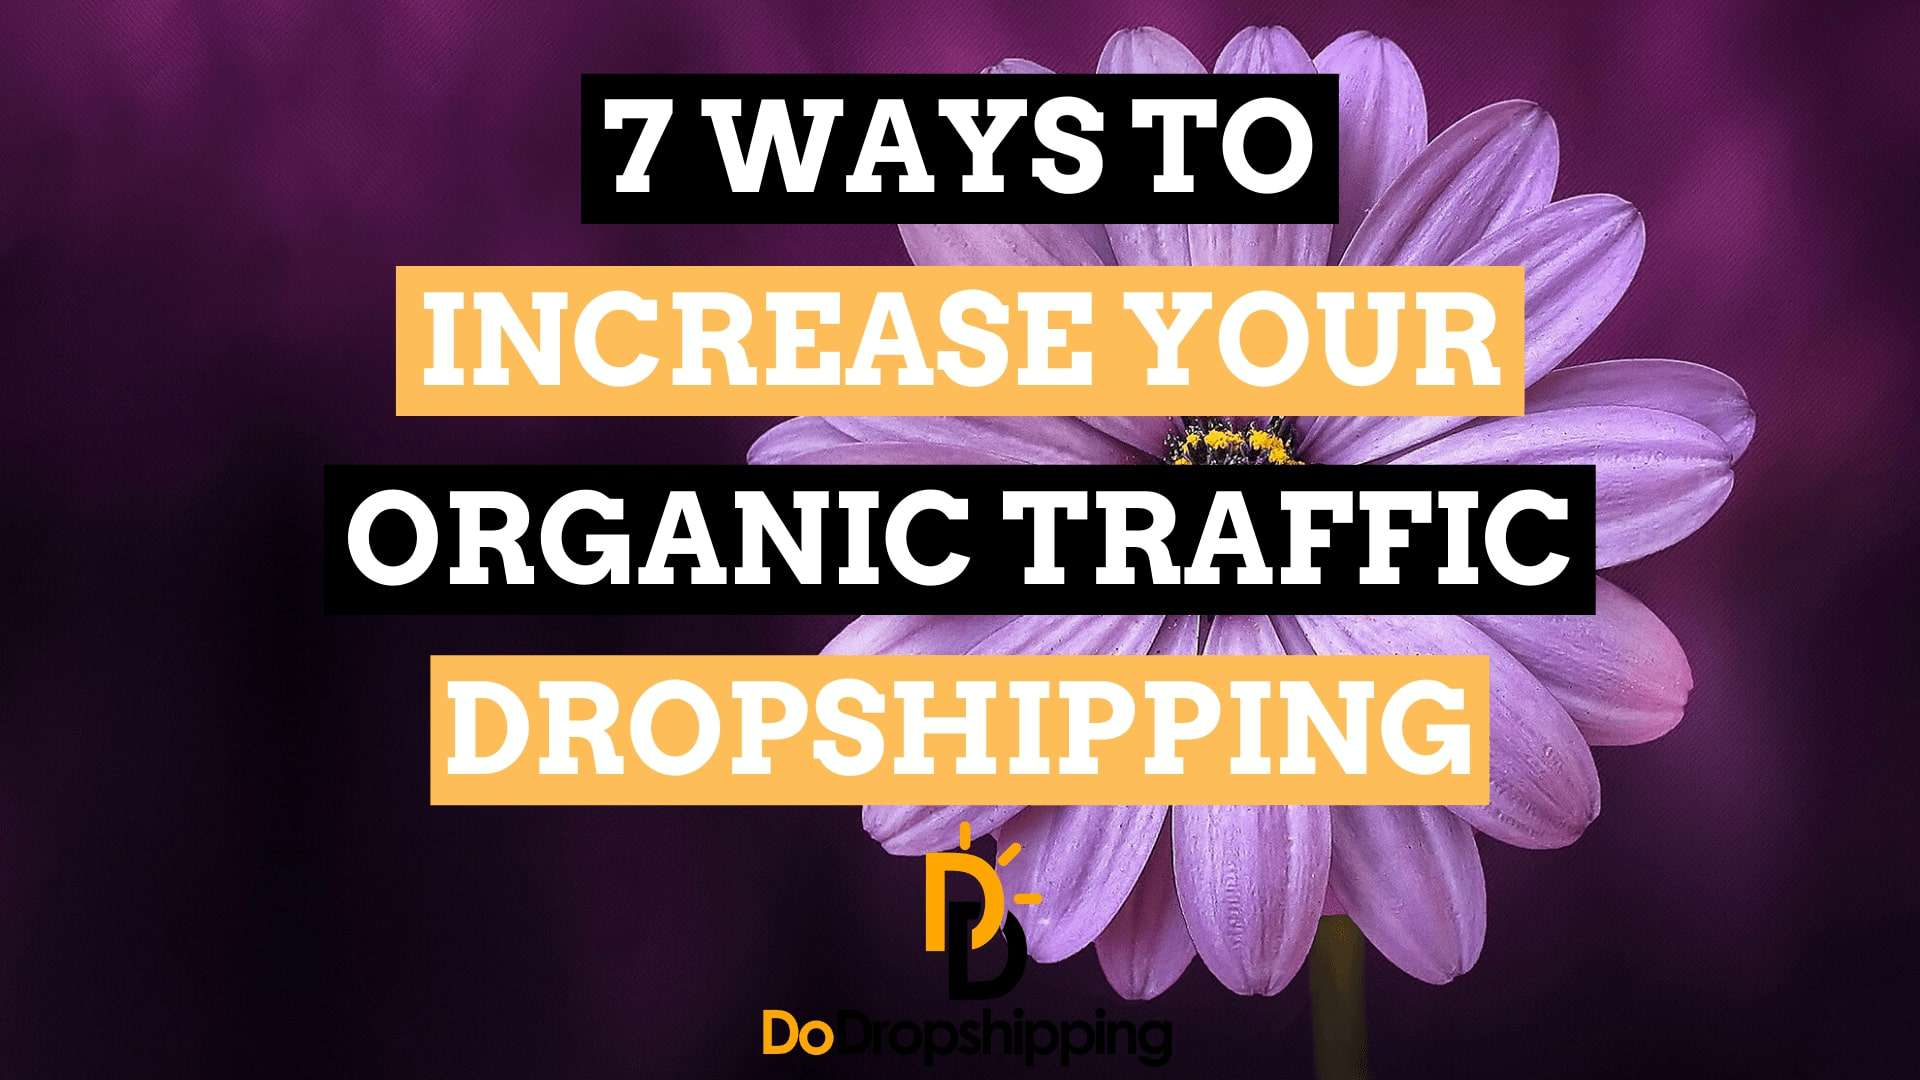 SEO for Dropshipping Stores: 7 Ways to Increase Your Traffic